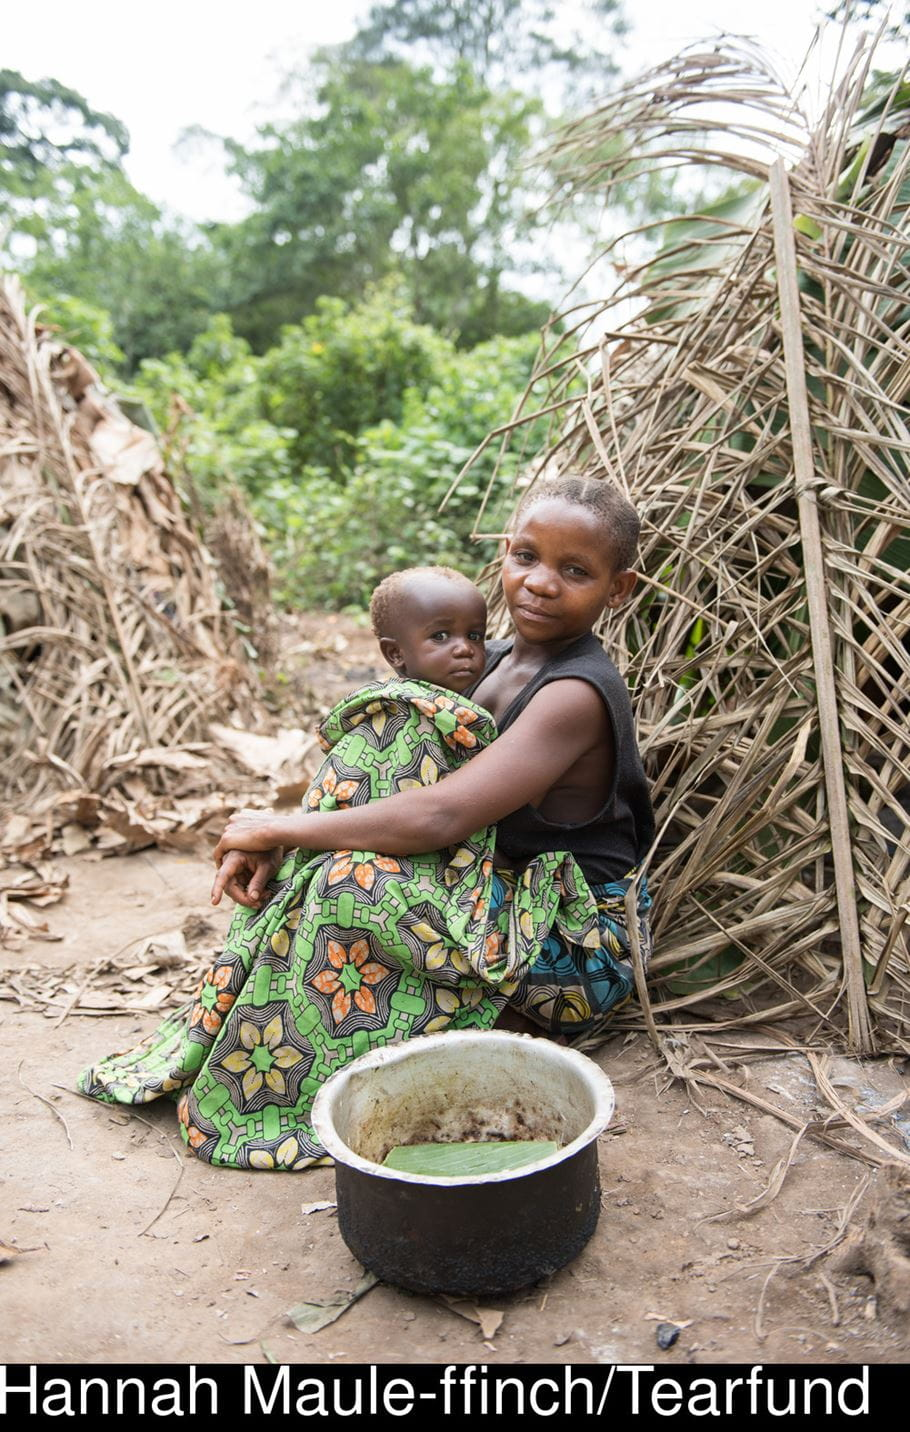 Matunda from DRC with one of her children